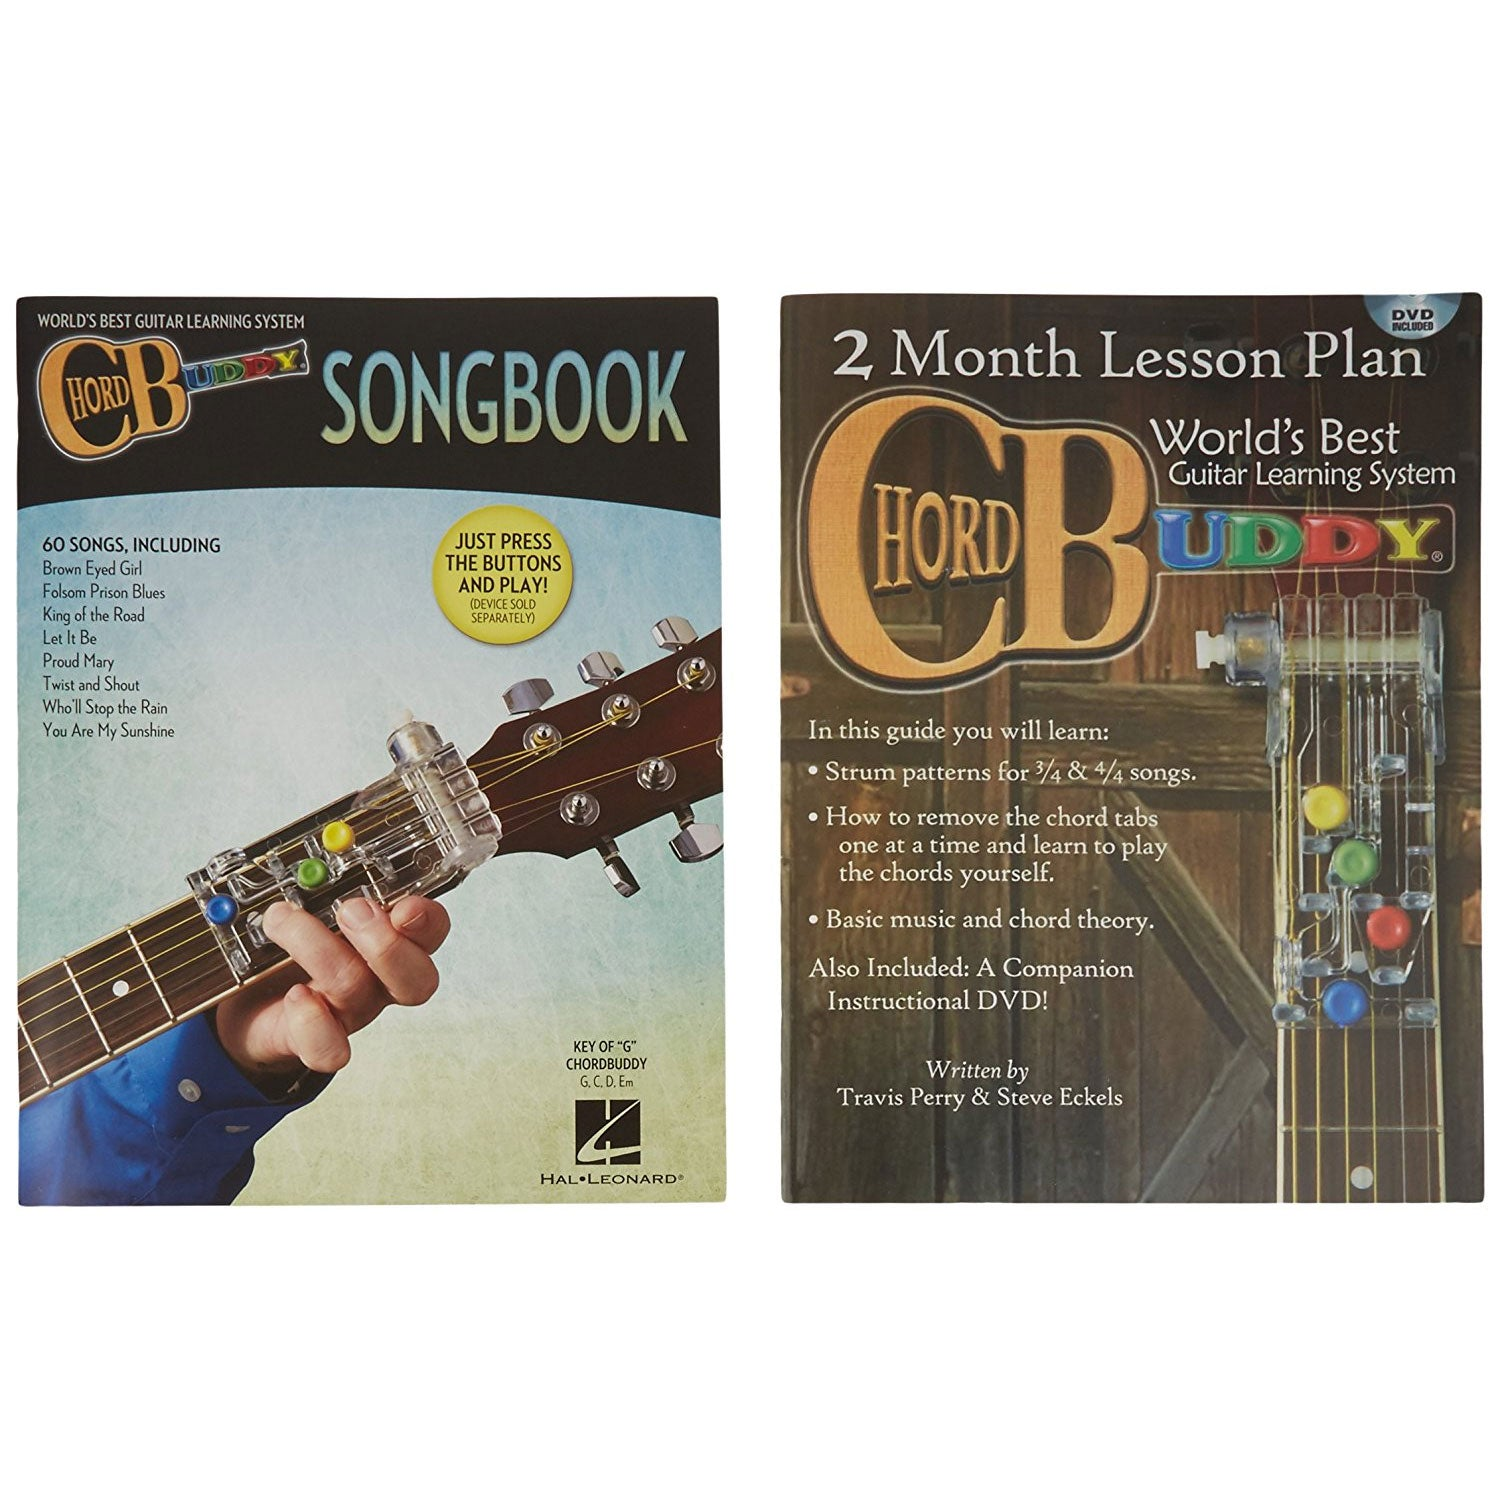 Chord Buddy The Worlds Best Guitar Learning System Dealmakers123